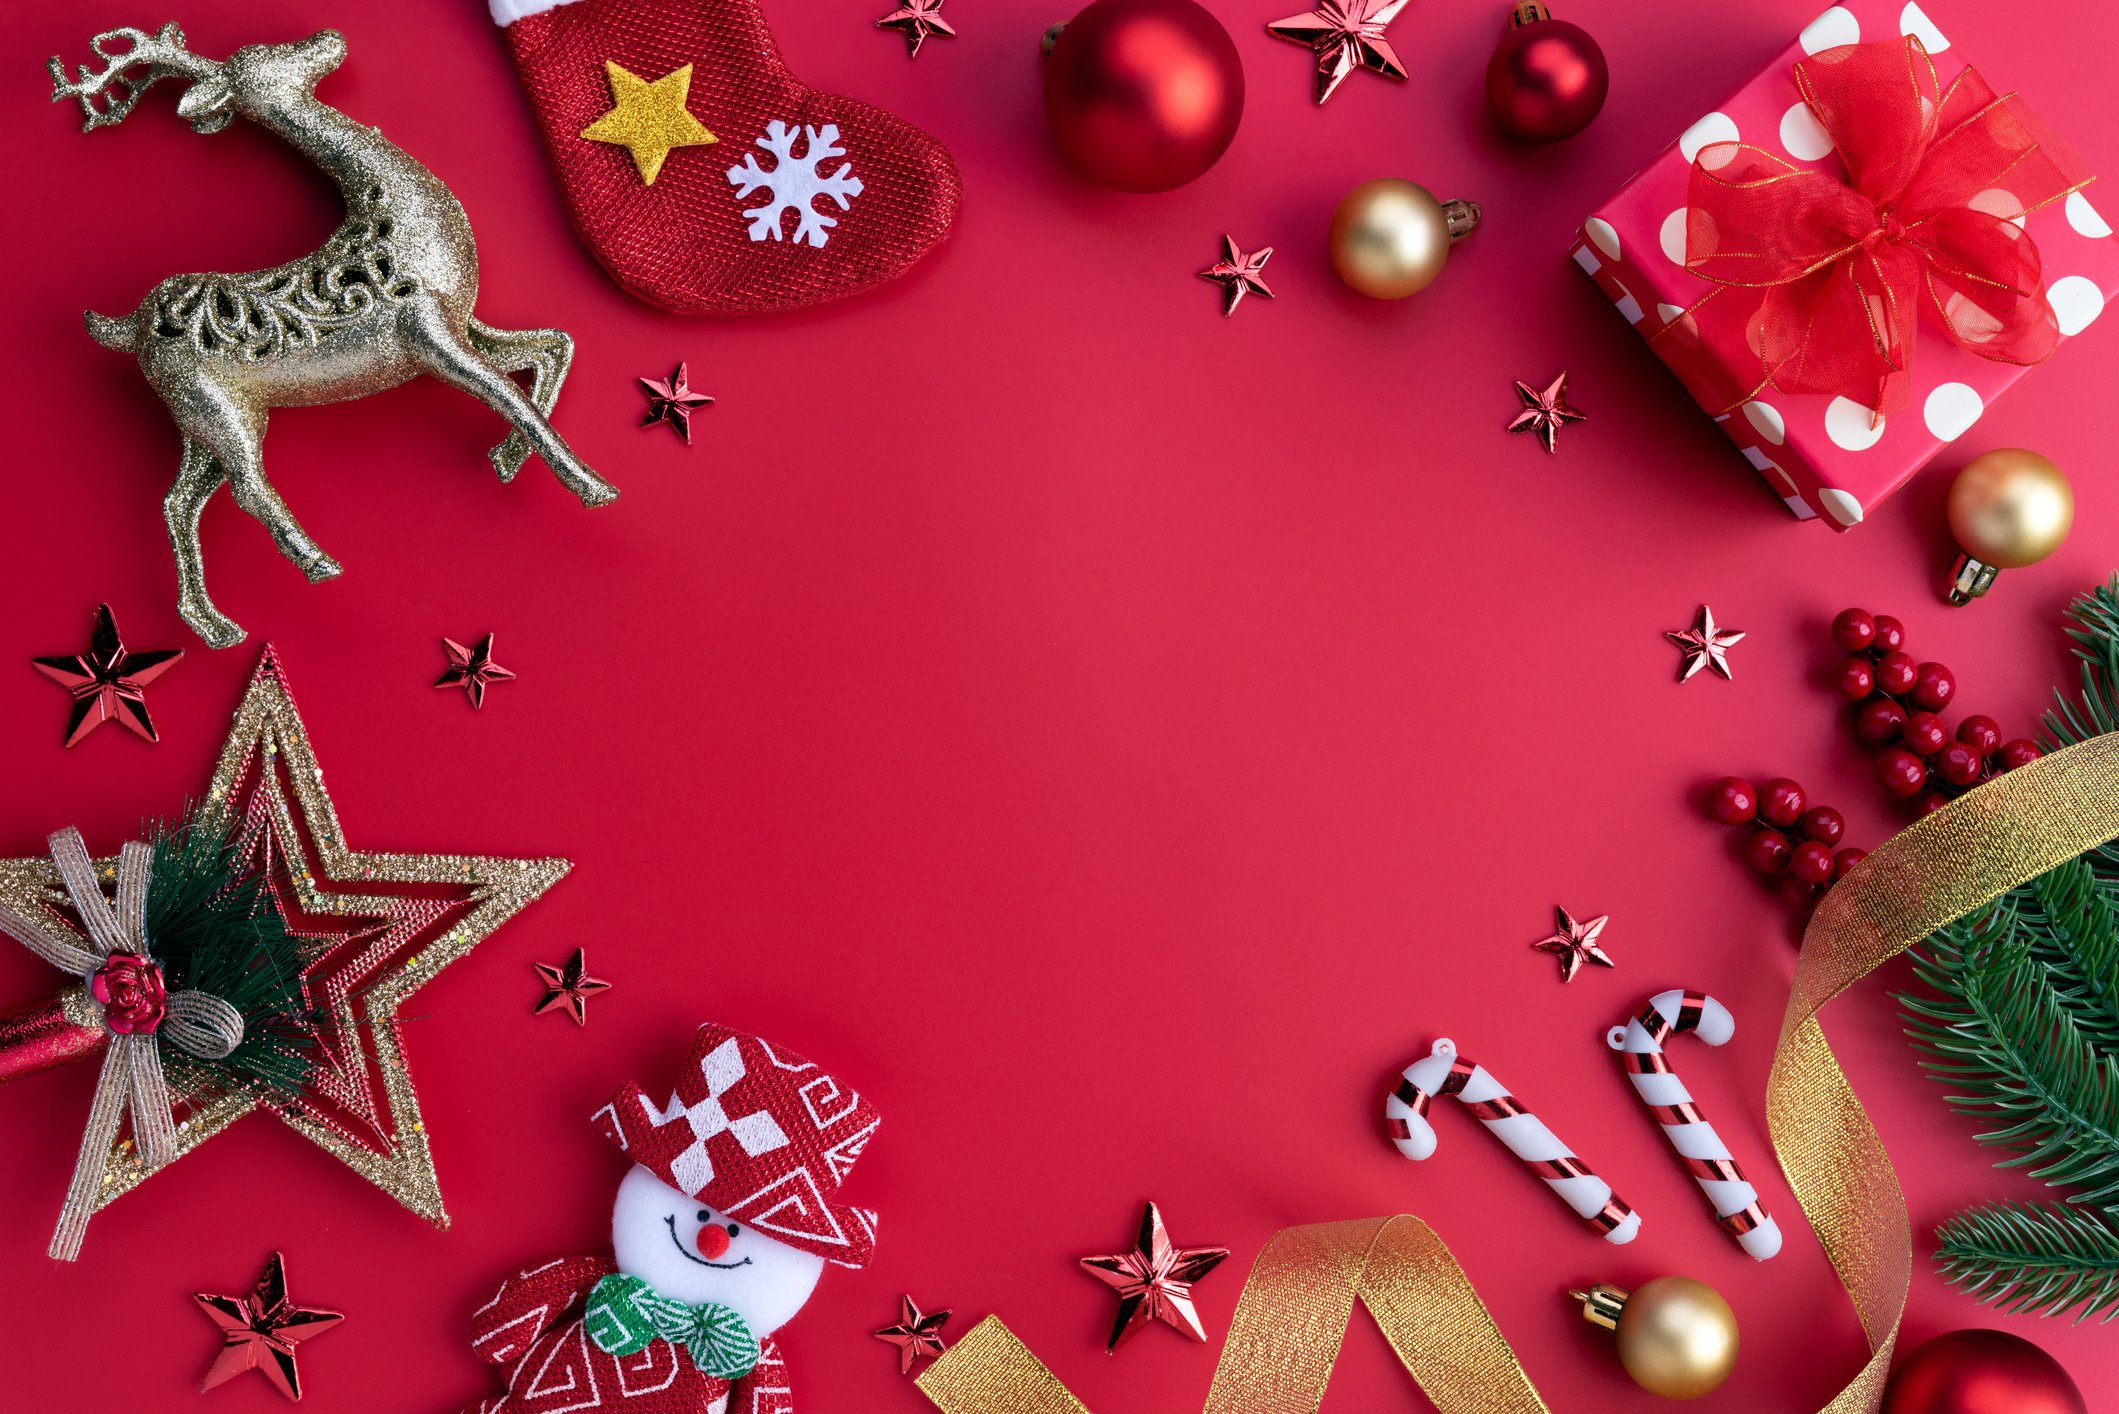 7 Incredible Christmas Instagram Marketing Campaigns of 2019